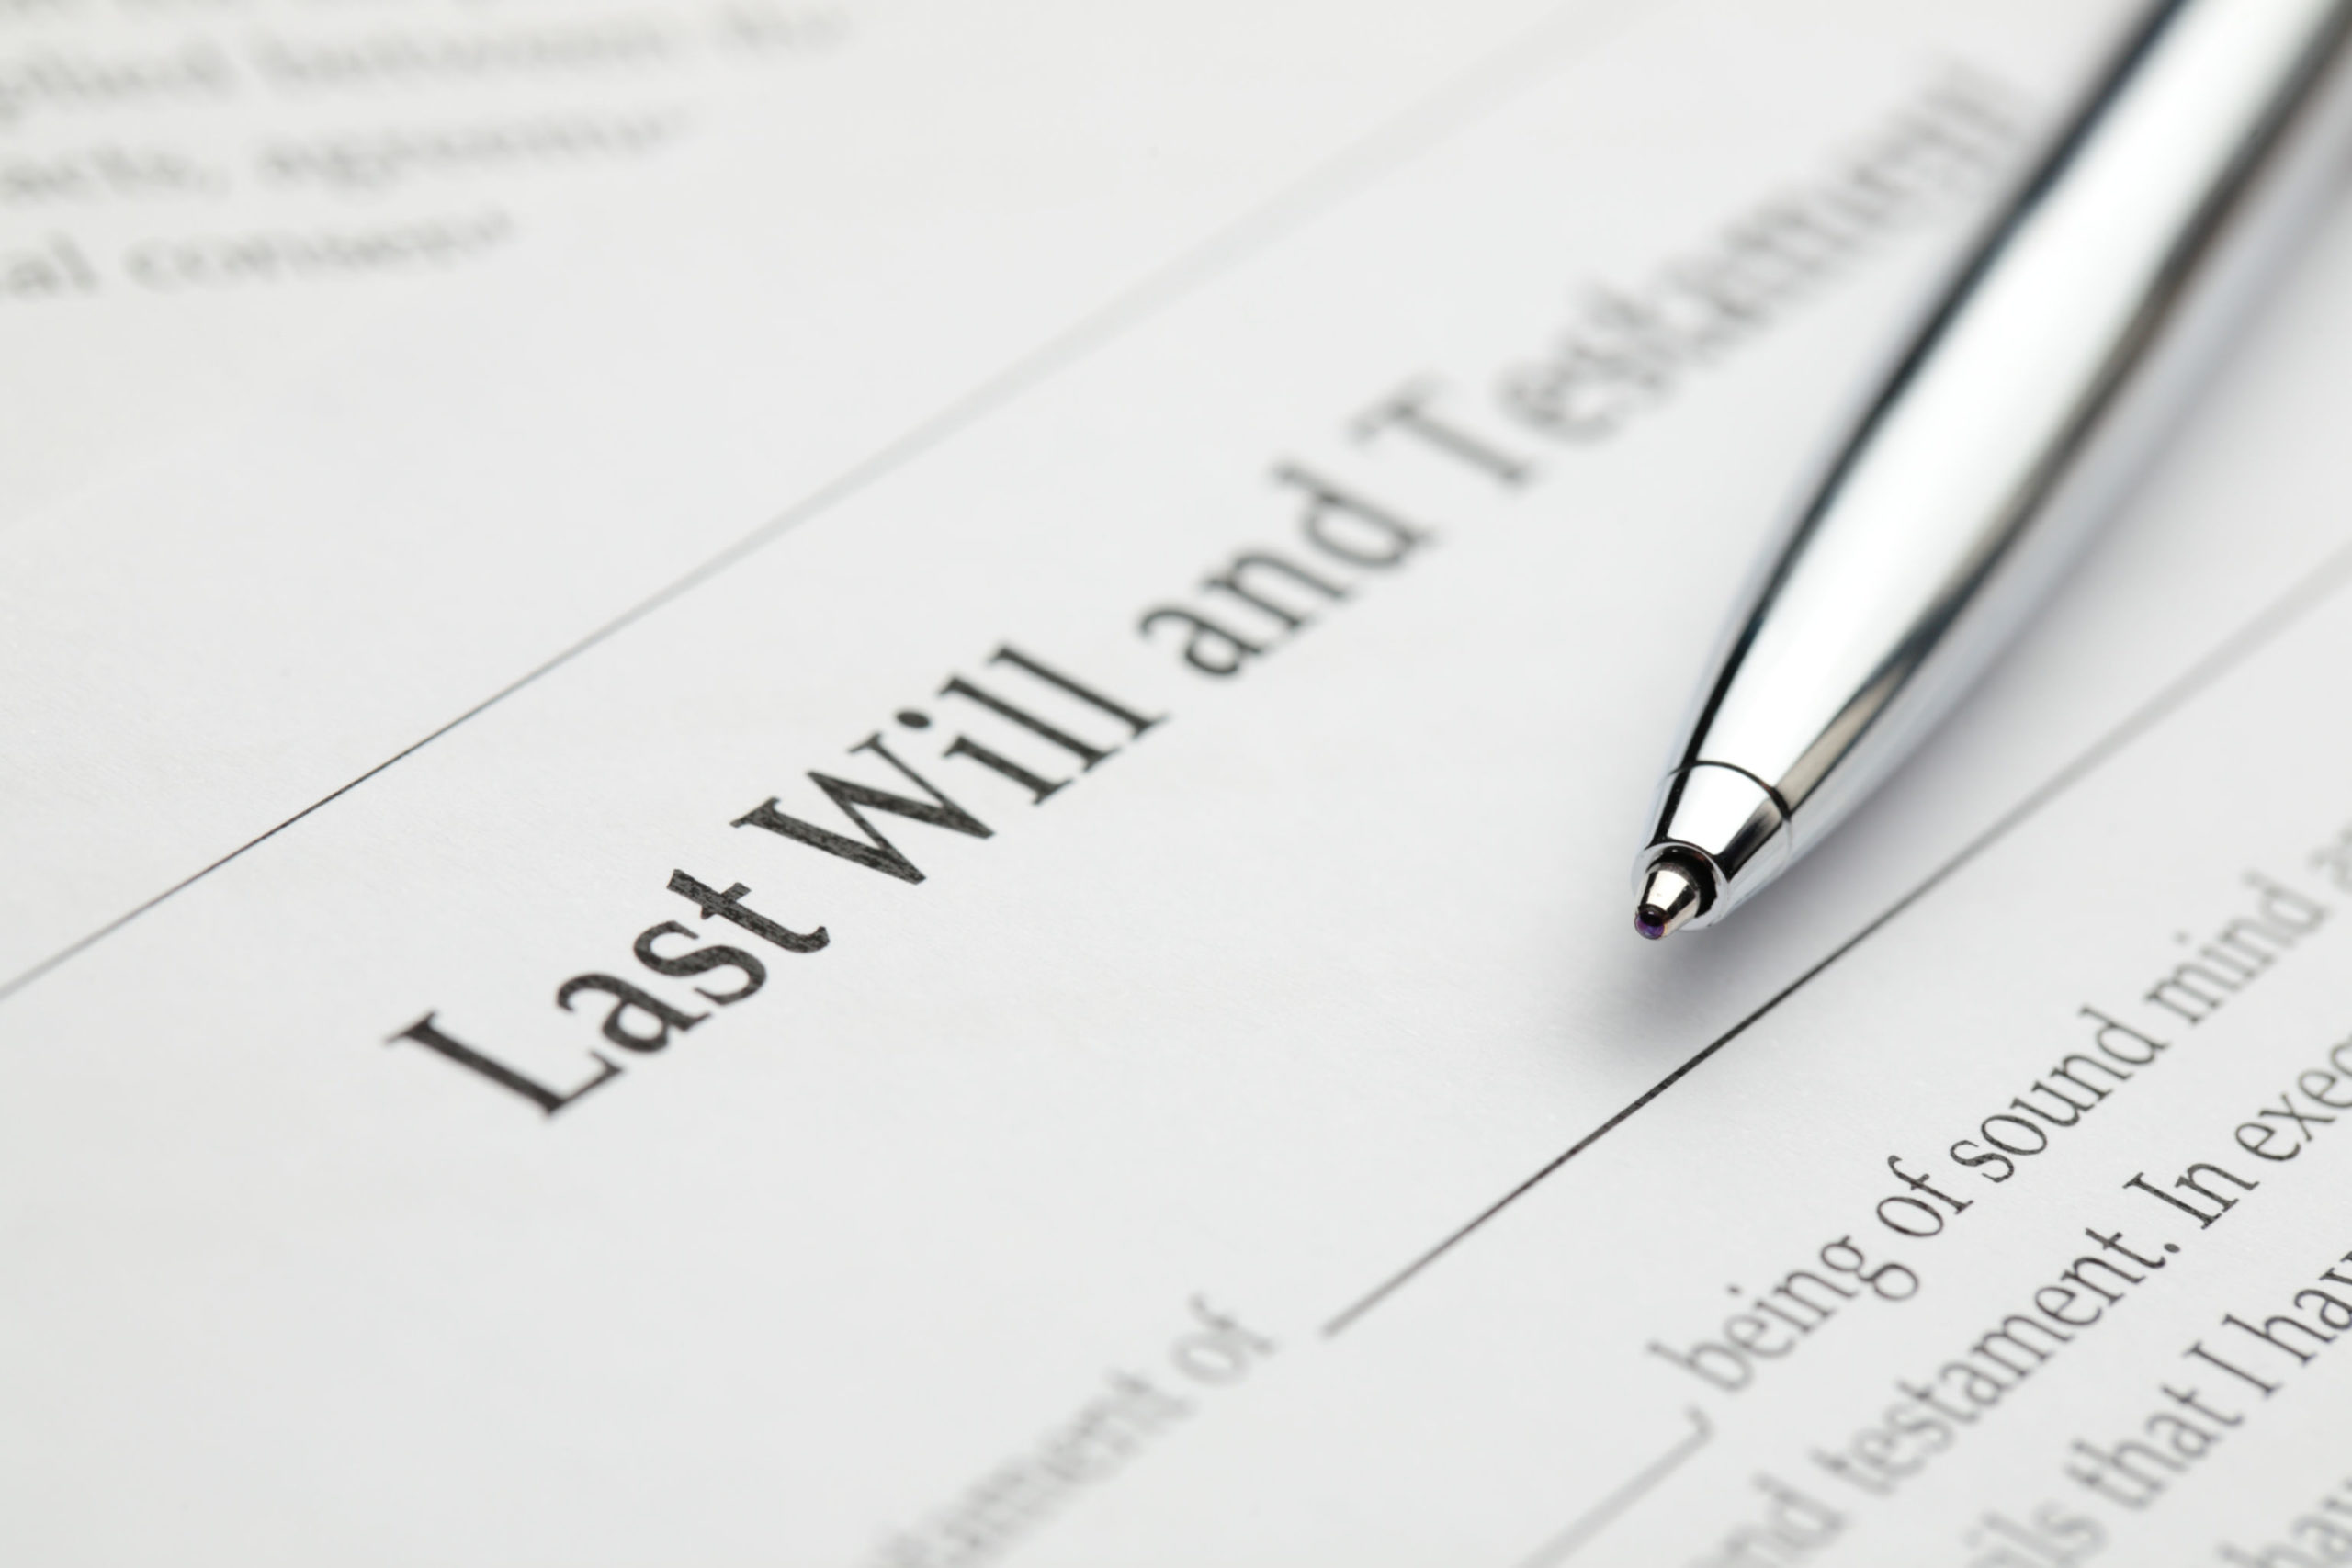 a document that says last will and testament